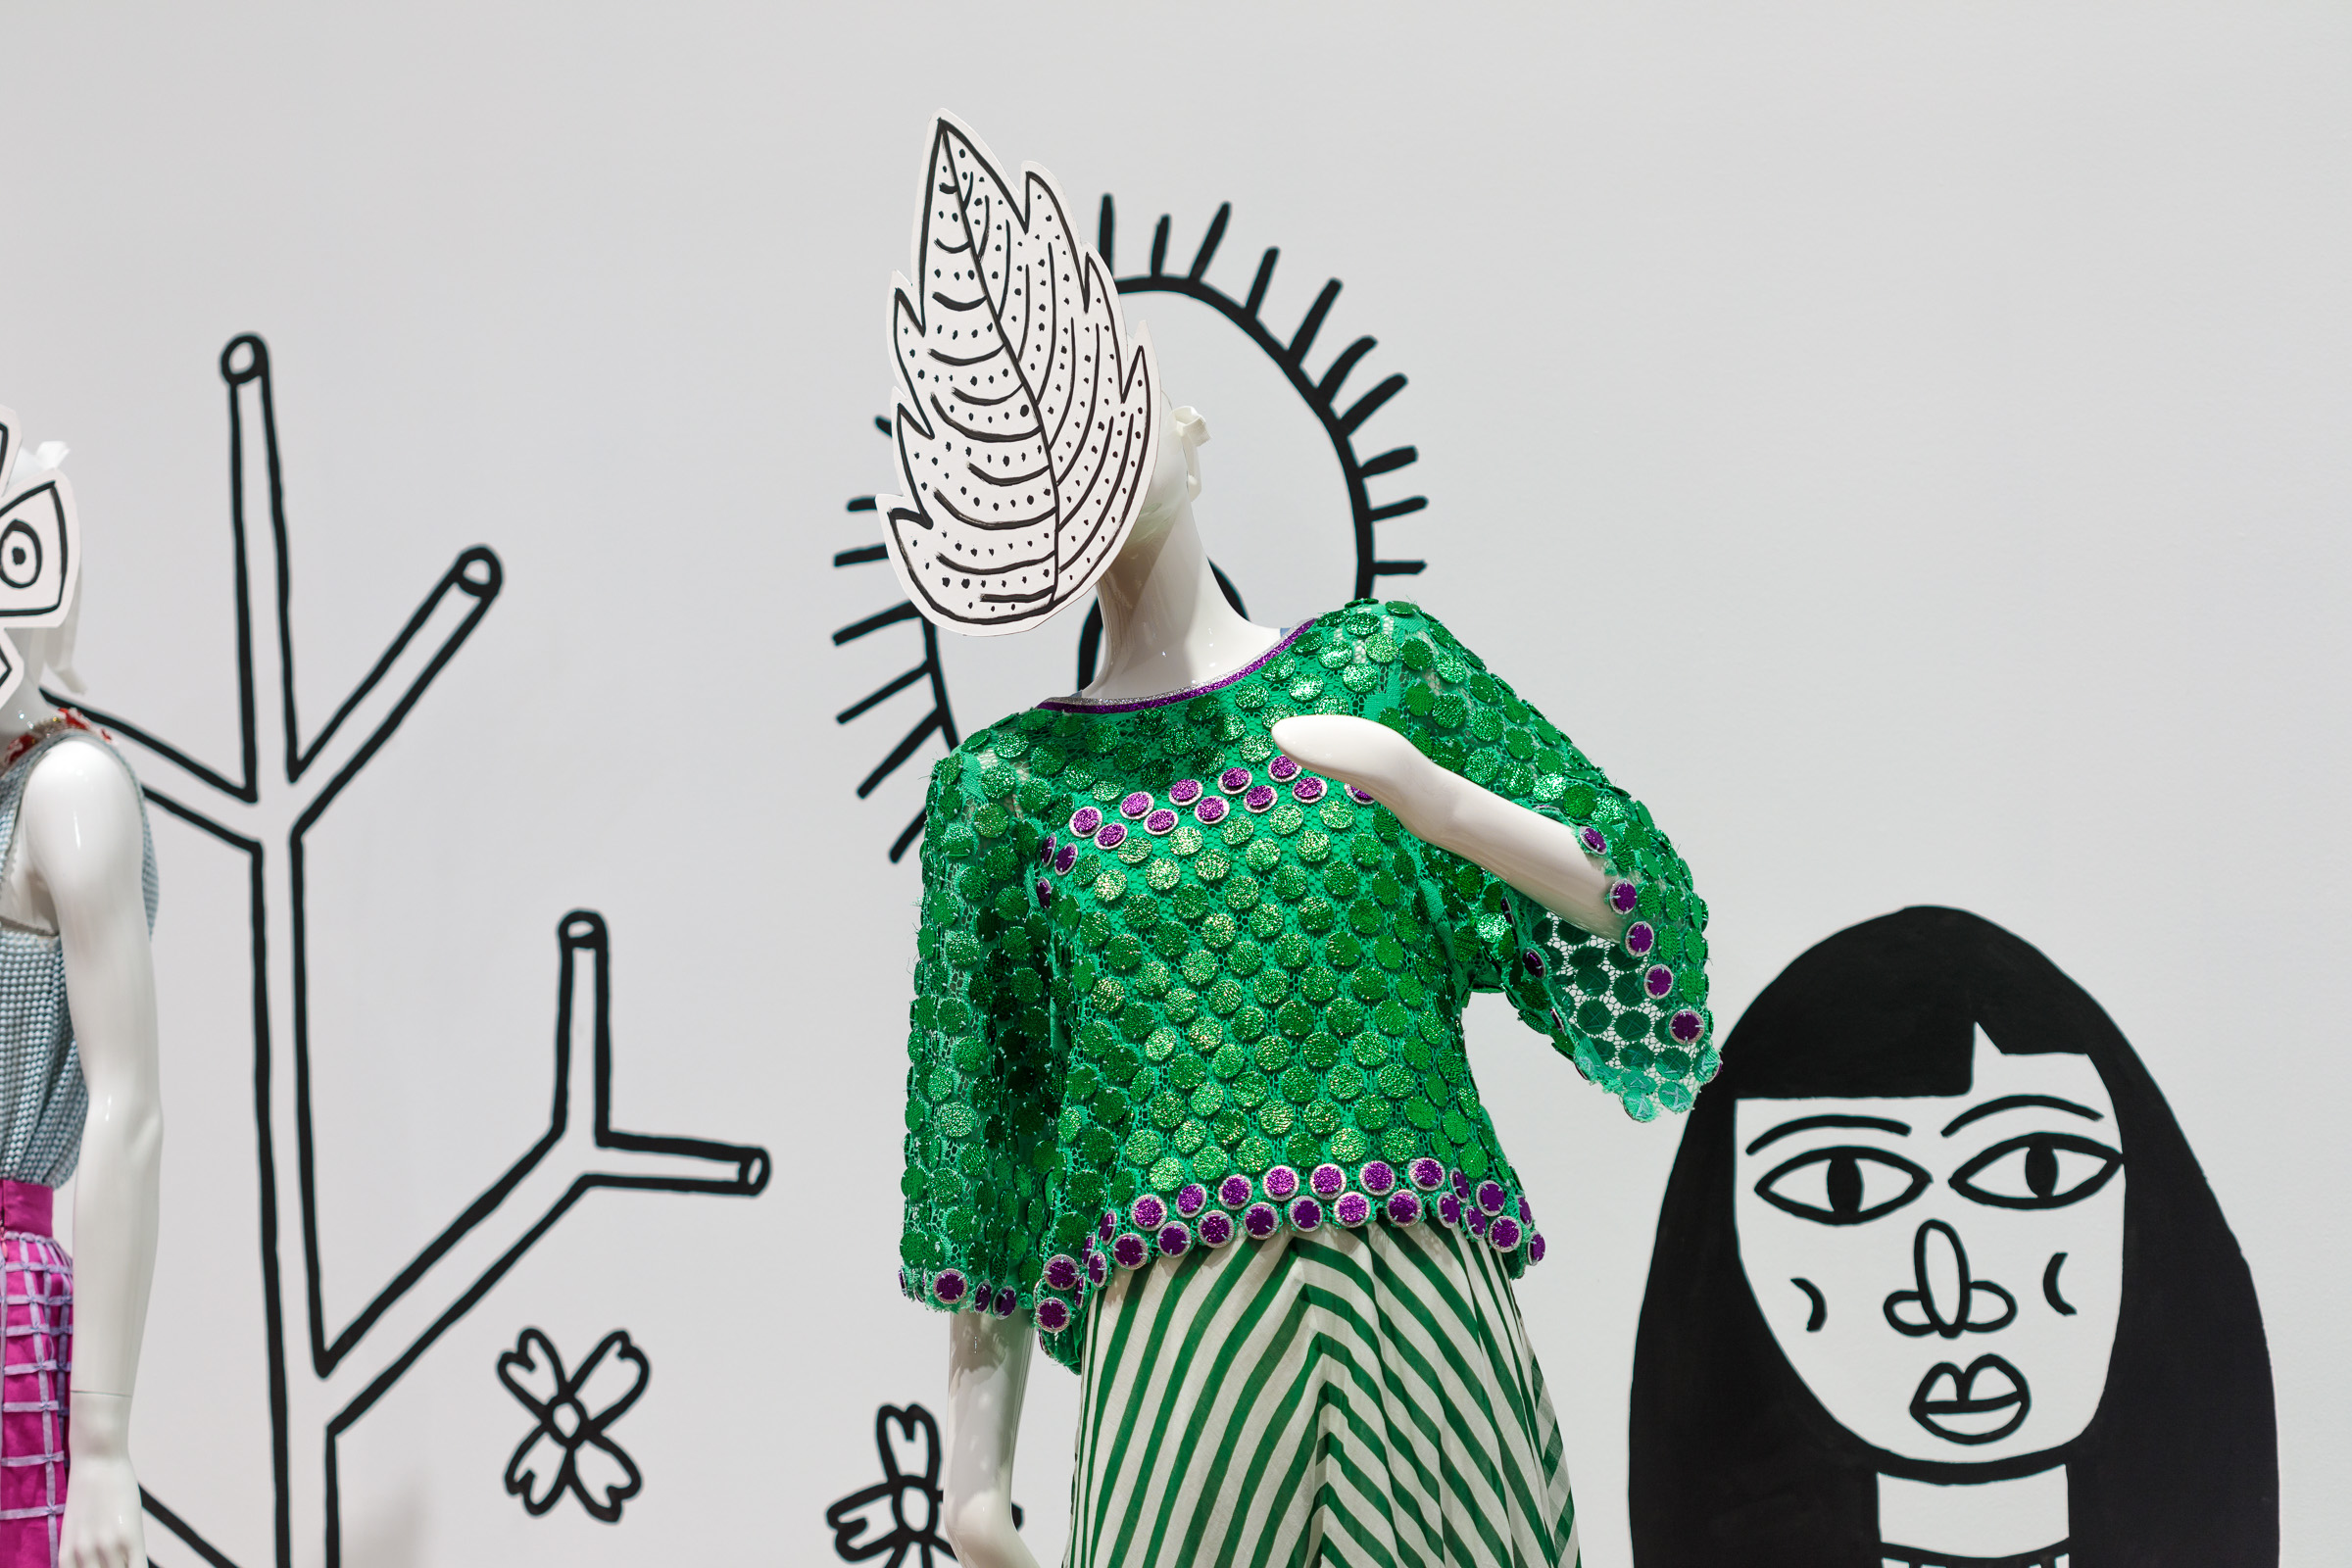 Image from Pattern & Print Exhibition